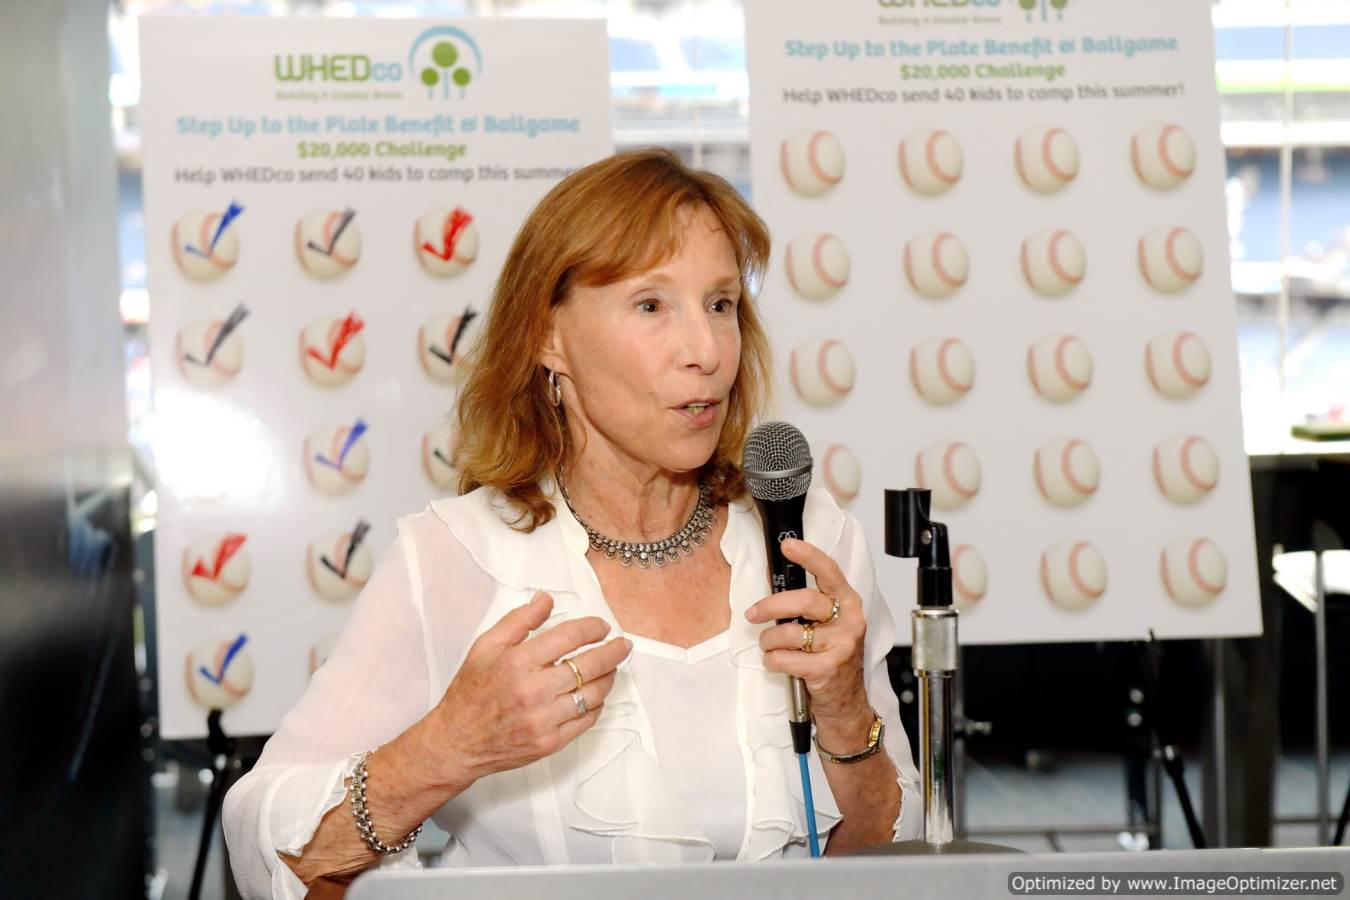 nancy biberman at benefit and ballgame 2016